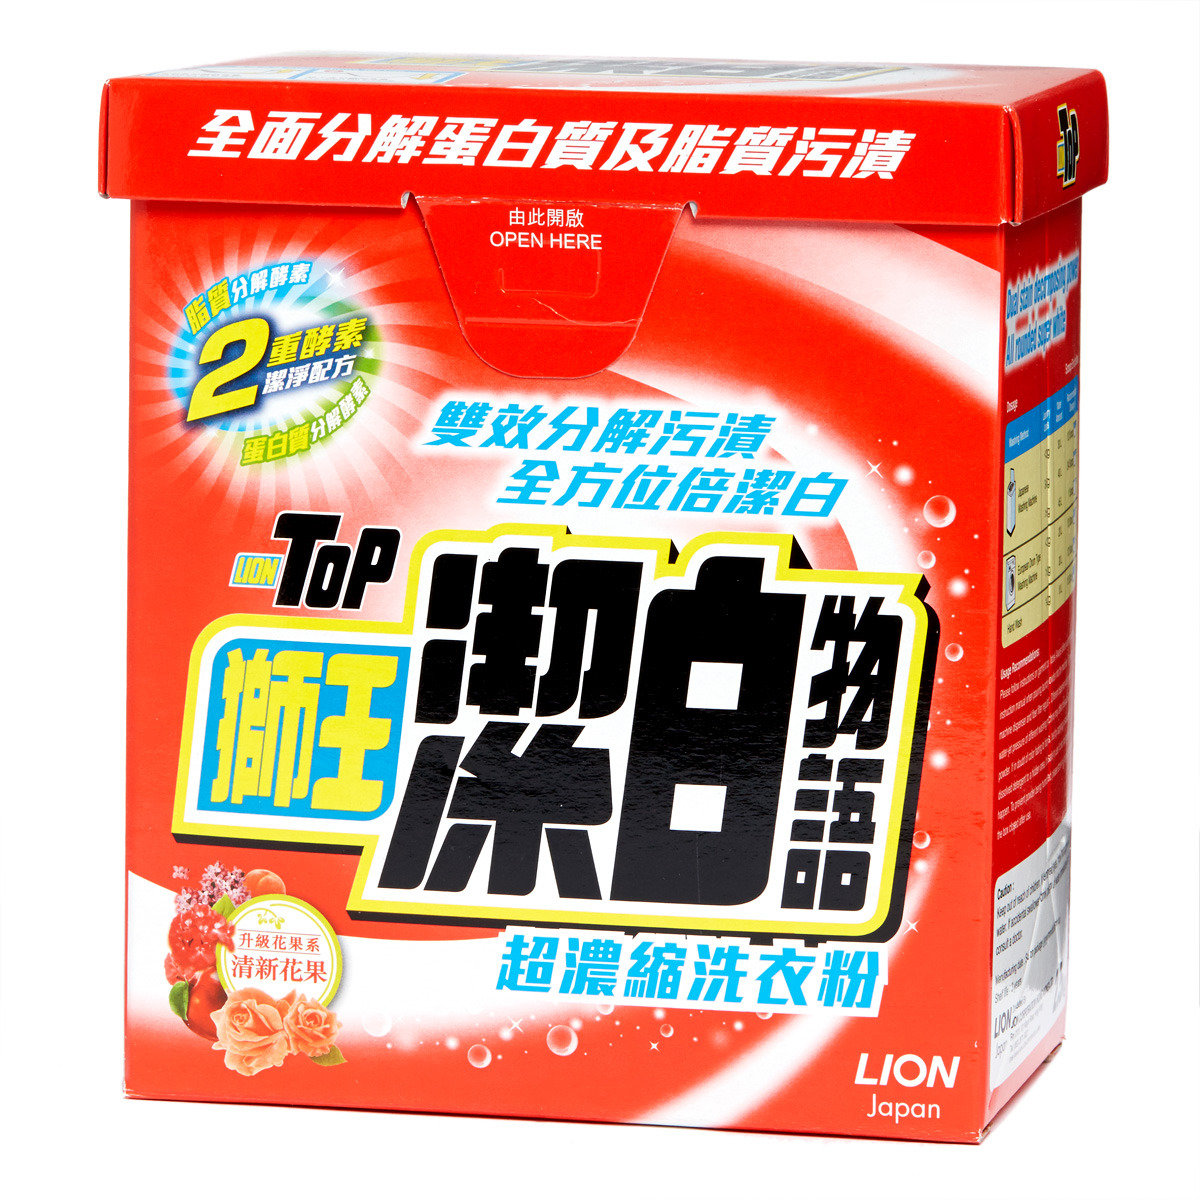 Lion Top - Laundry Detergent (Included Lipase and Protease)